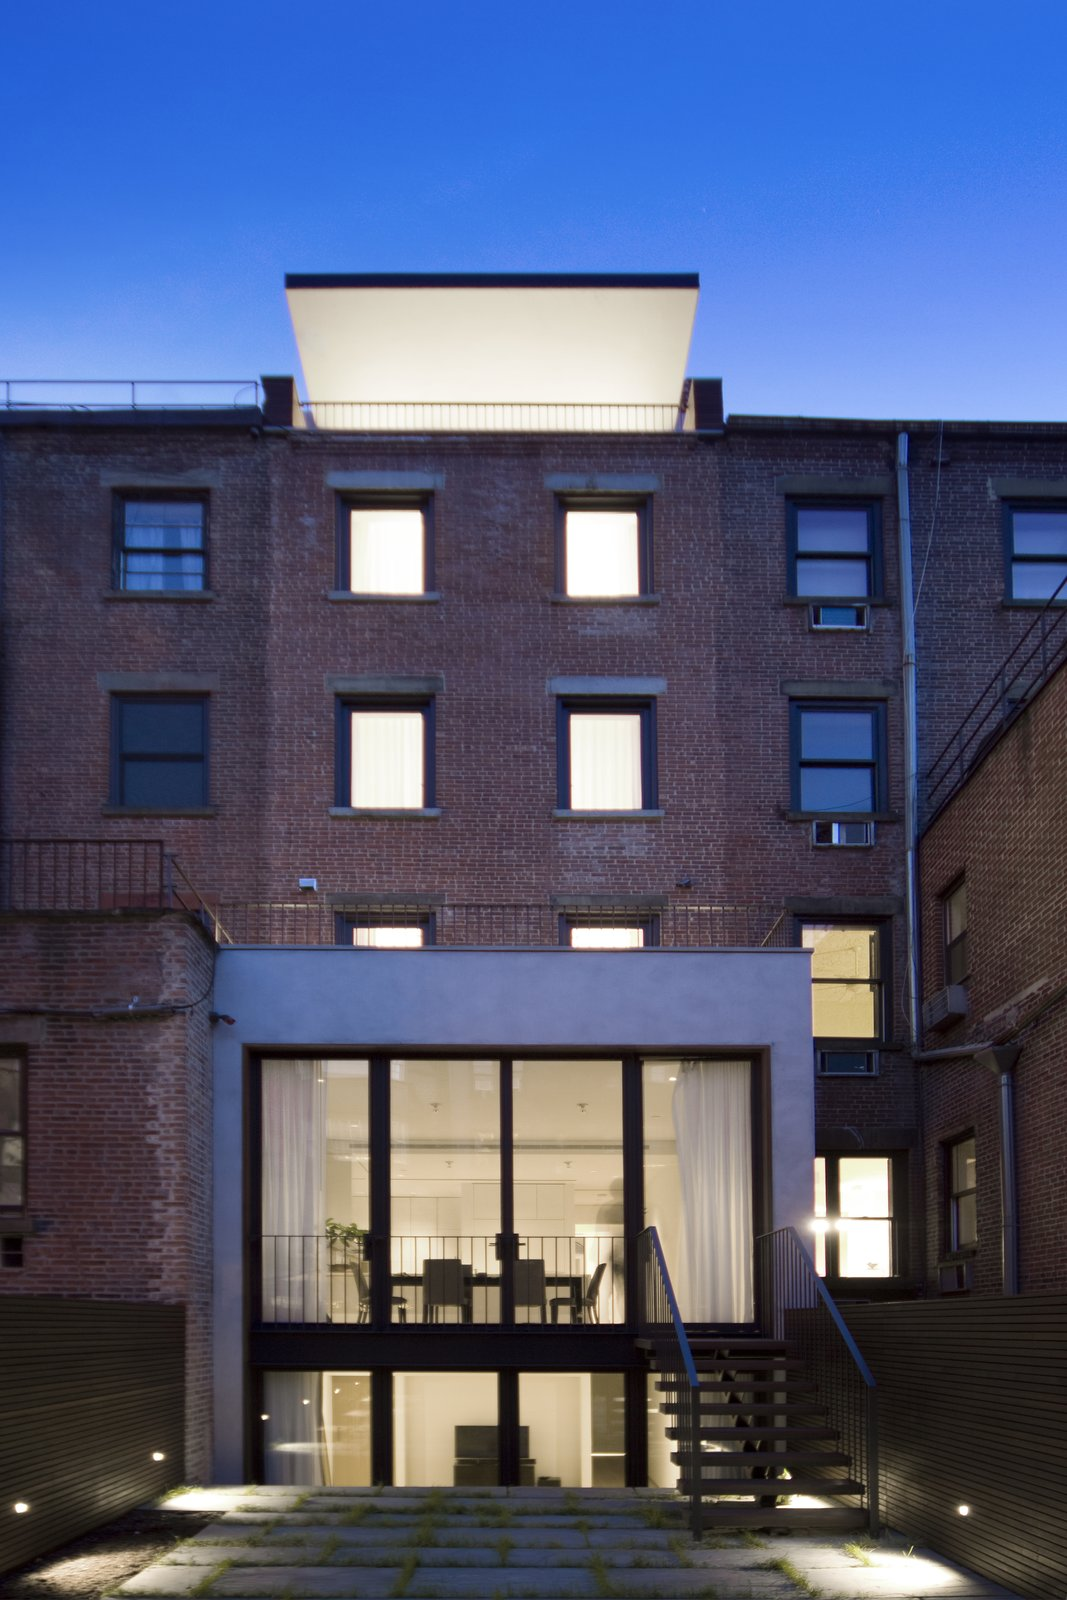 The restored brick rear facade contrasts with the extended footprint of the first two floors and a dramatic cantilevered penthouse roof. Blue stone pavers, infilled with grass, finish the patio while a black steel stair leads to the kitchen.  New York City Row House Renovations We Love by Zachary Edelson from White Oak